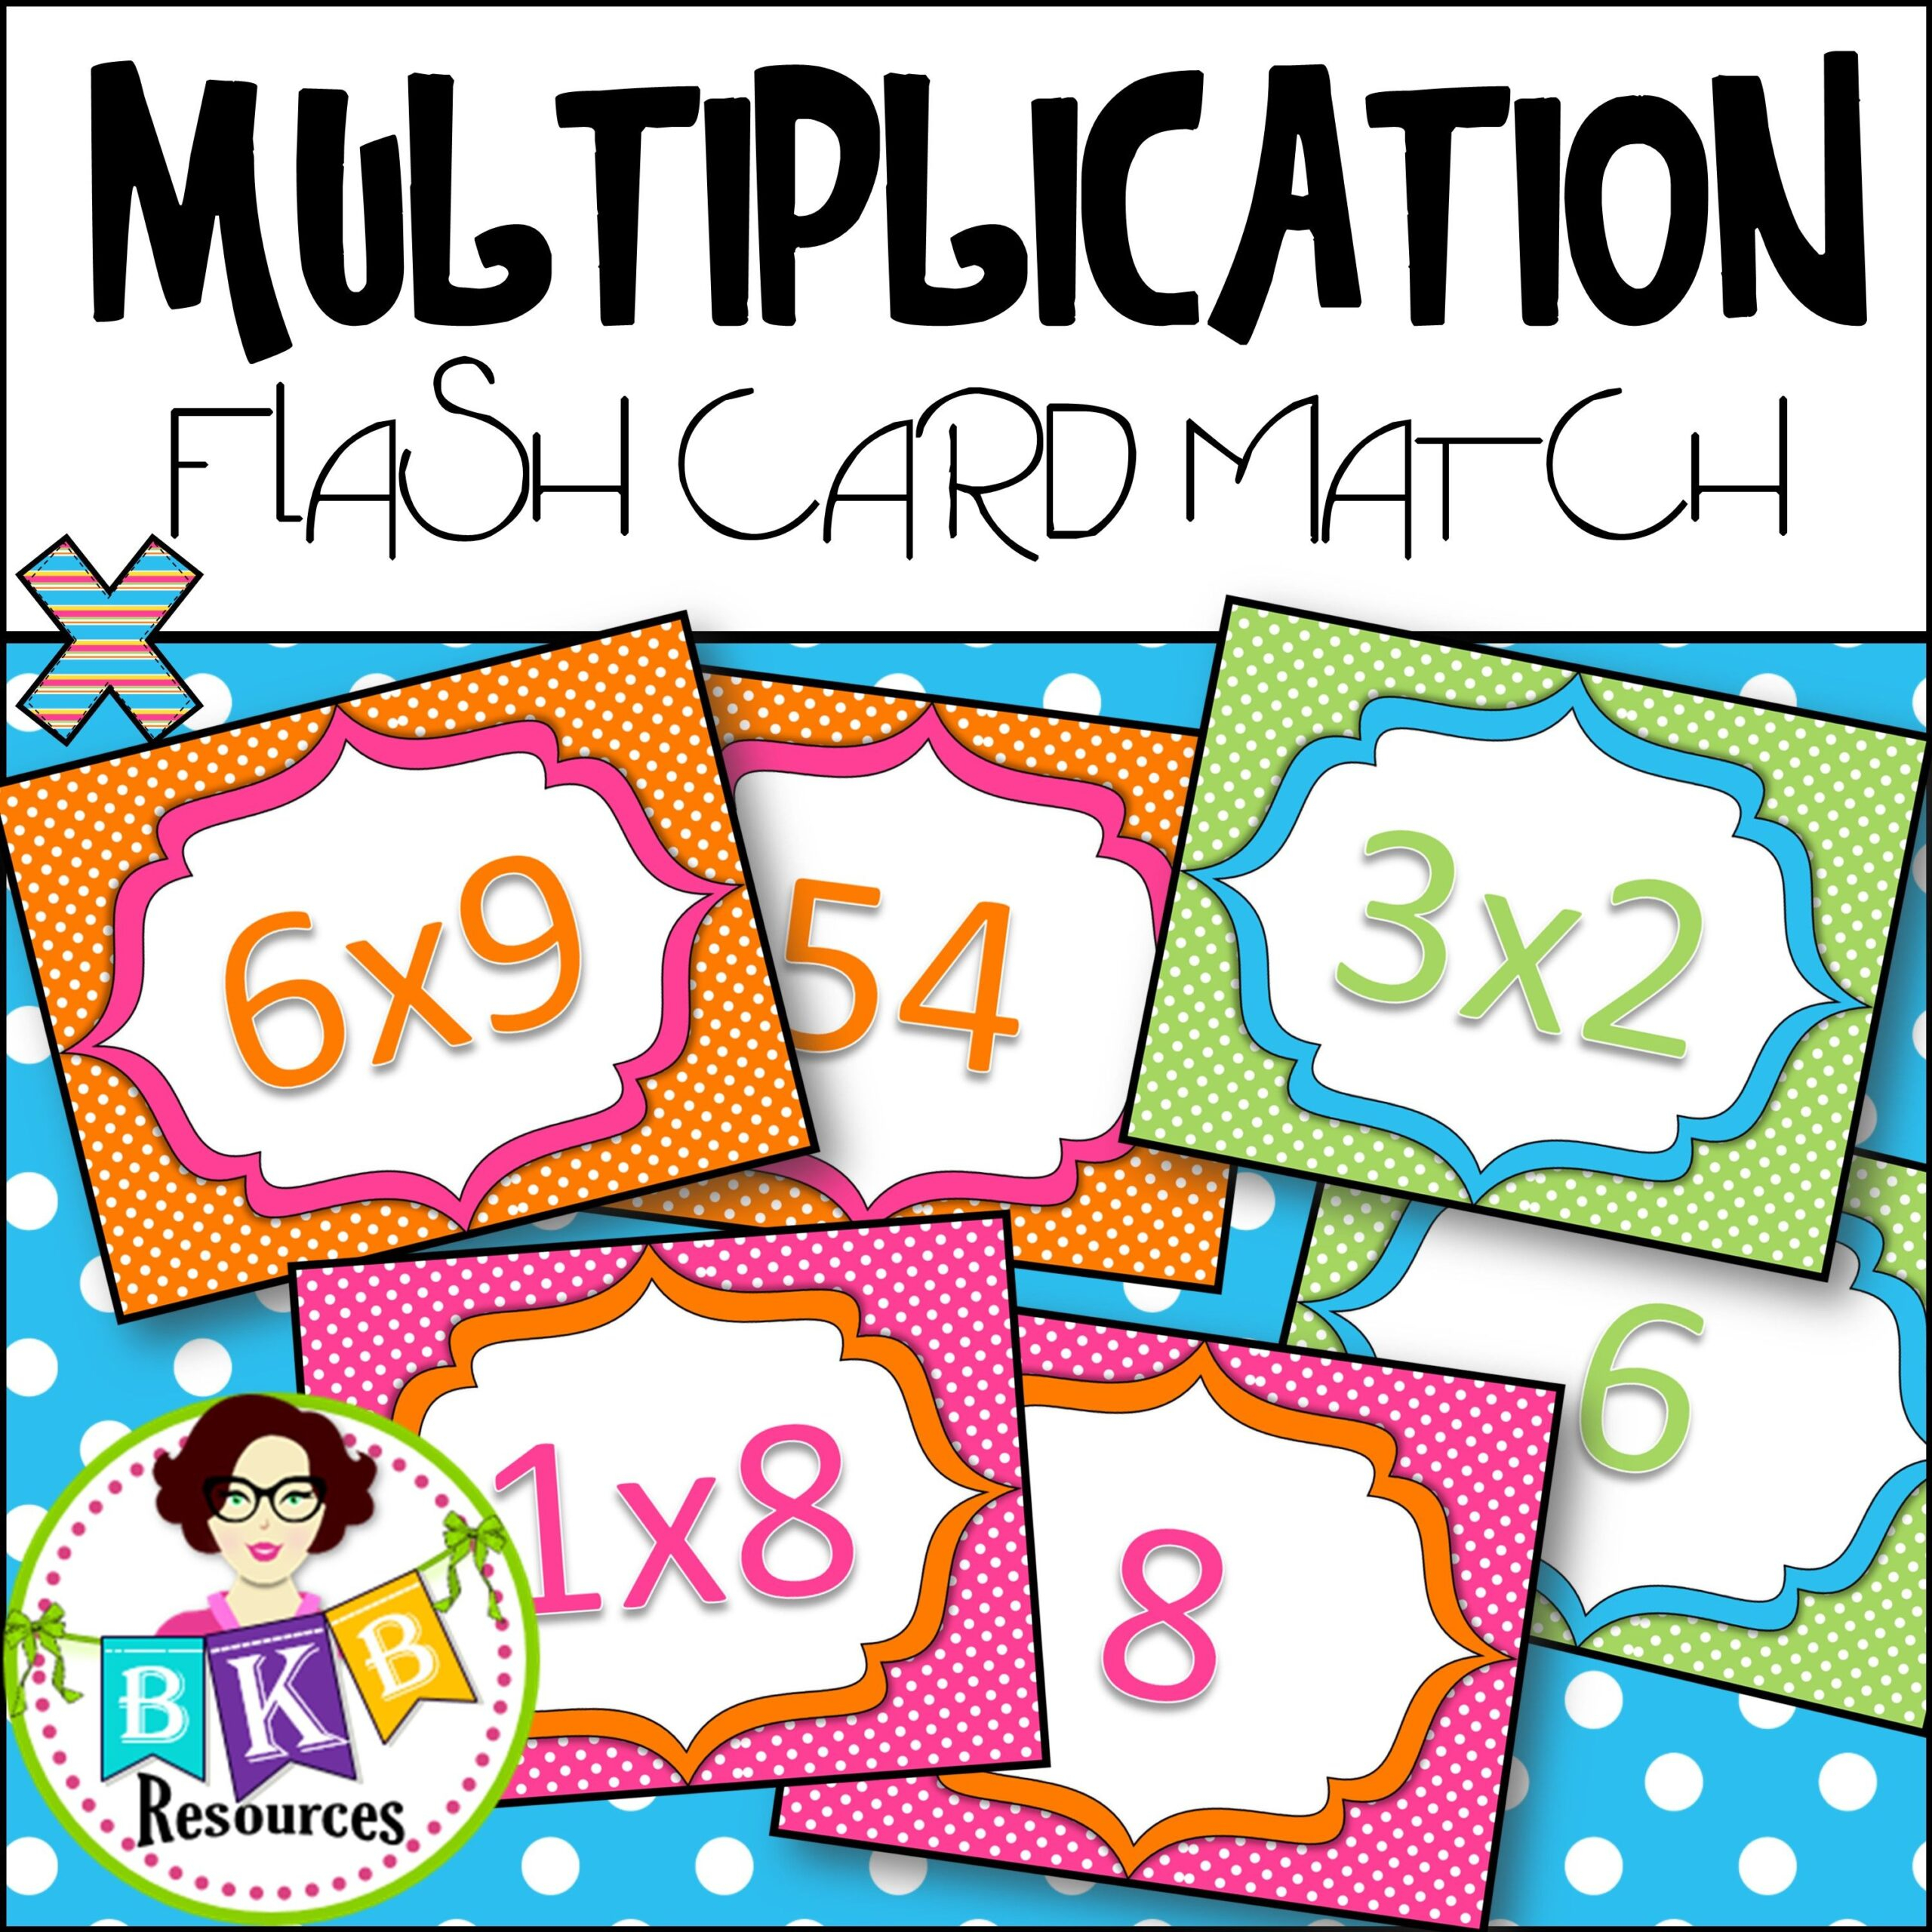 Multiplication Flash Card Match Flashcards Numbers 1-10